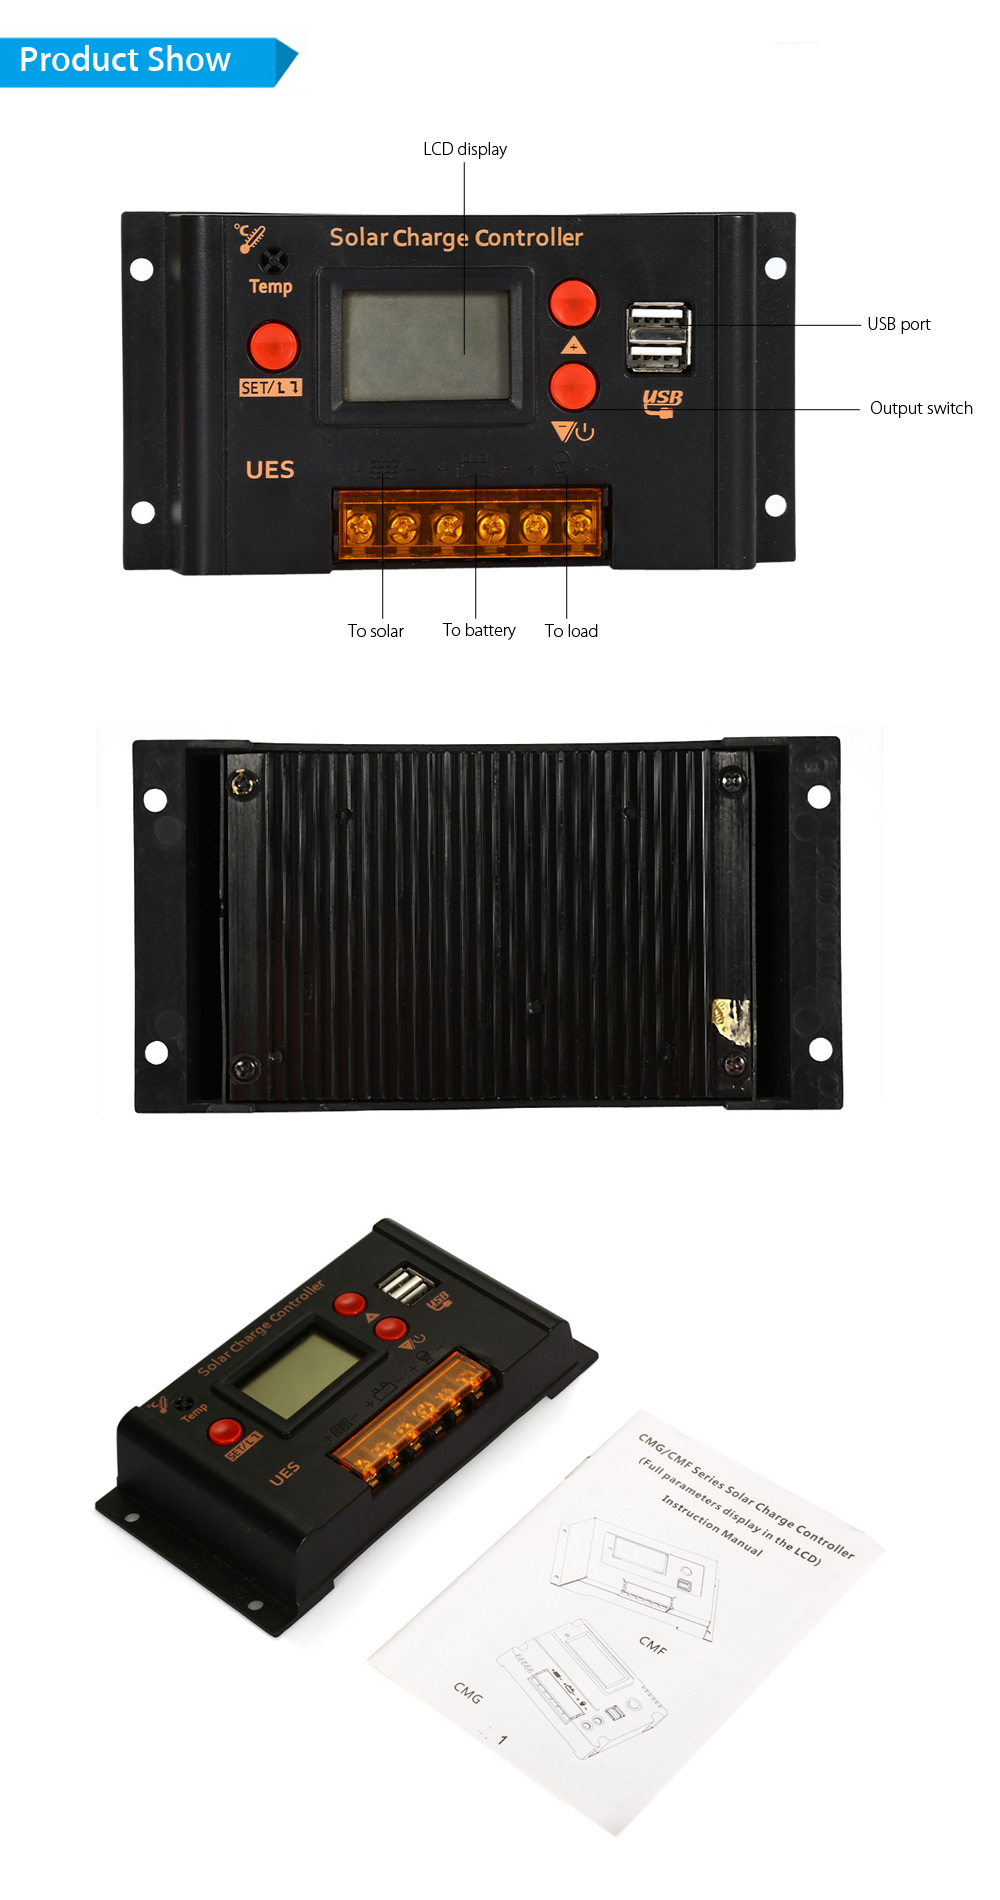 UEIUA UES - 2420 12V 20A Over Voltage Protection USB Solar Charger Controller LCD Display PWM Battery Regulator